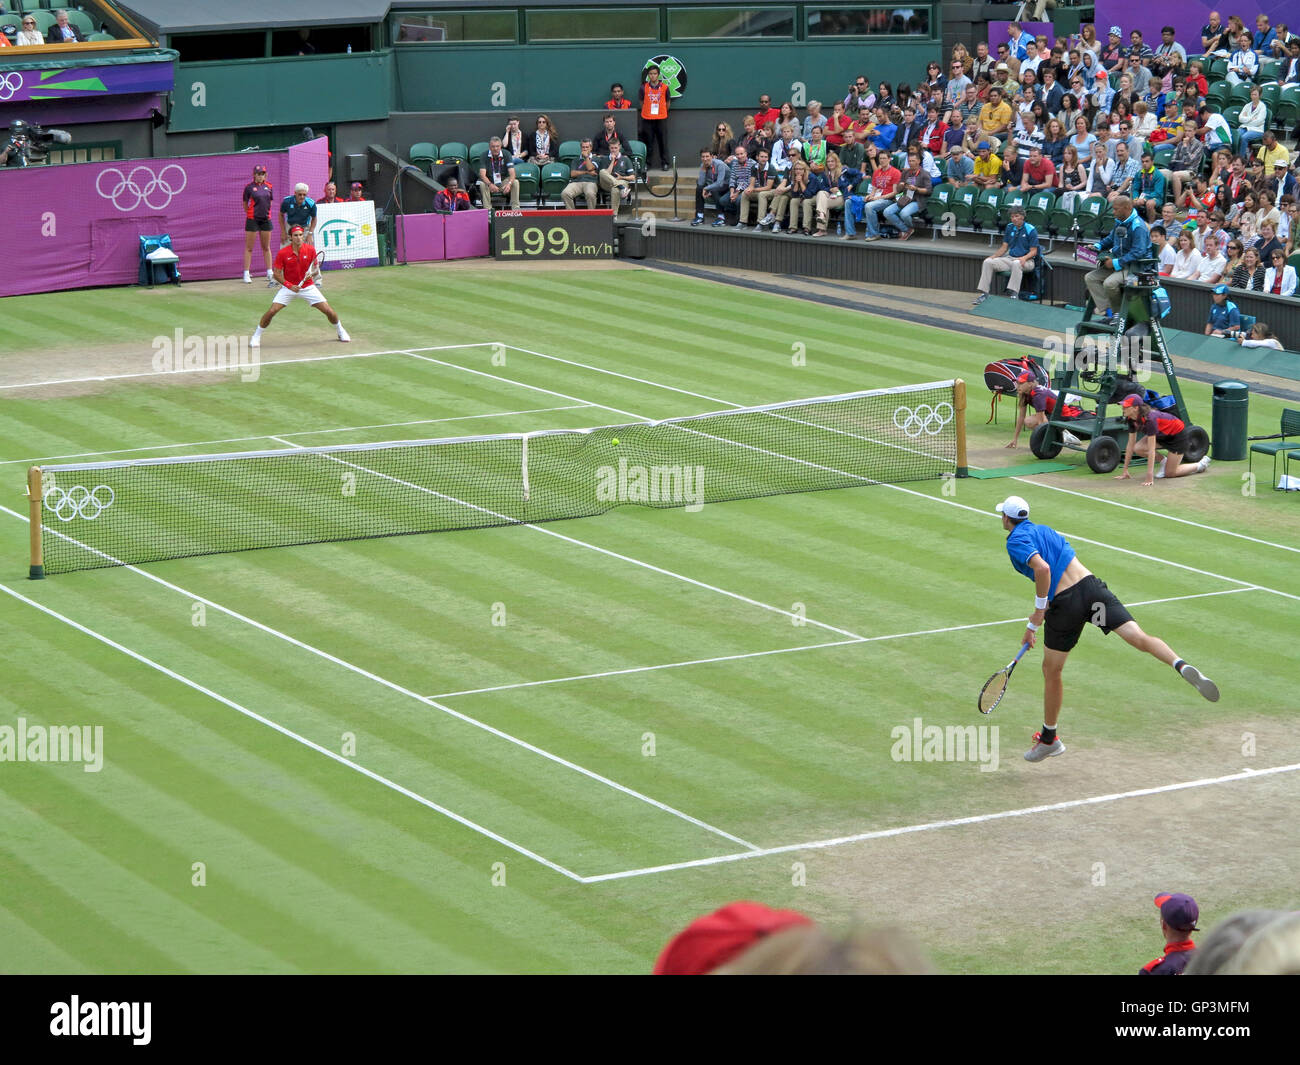 Wimbledone, UK. August 2nd, 2012. Roger Federer and John Isner during their singles matches at the summer Olympics - Stock Image